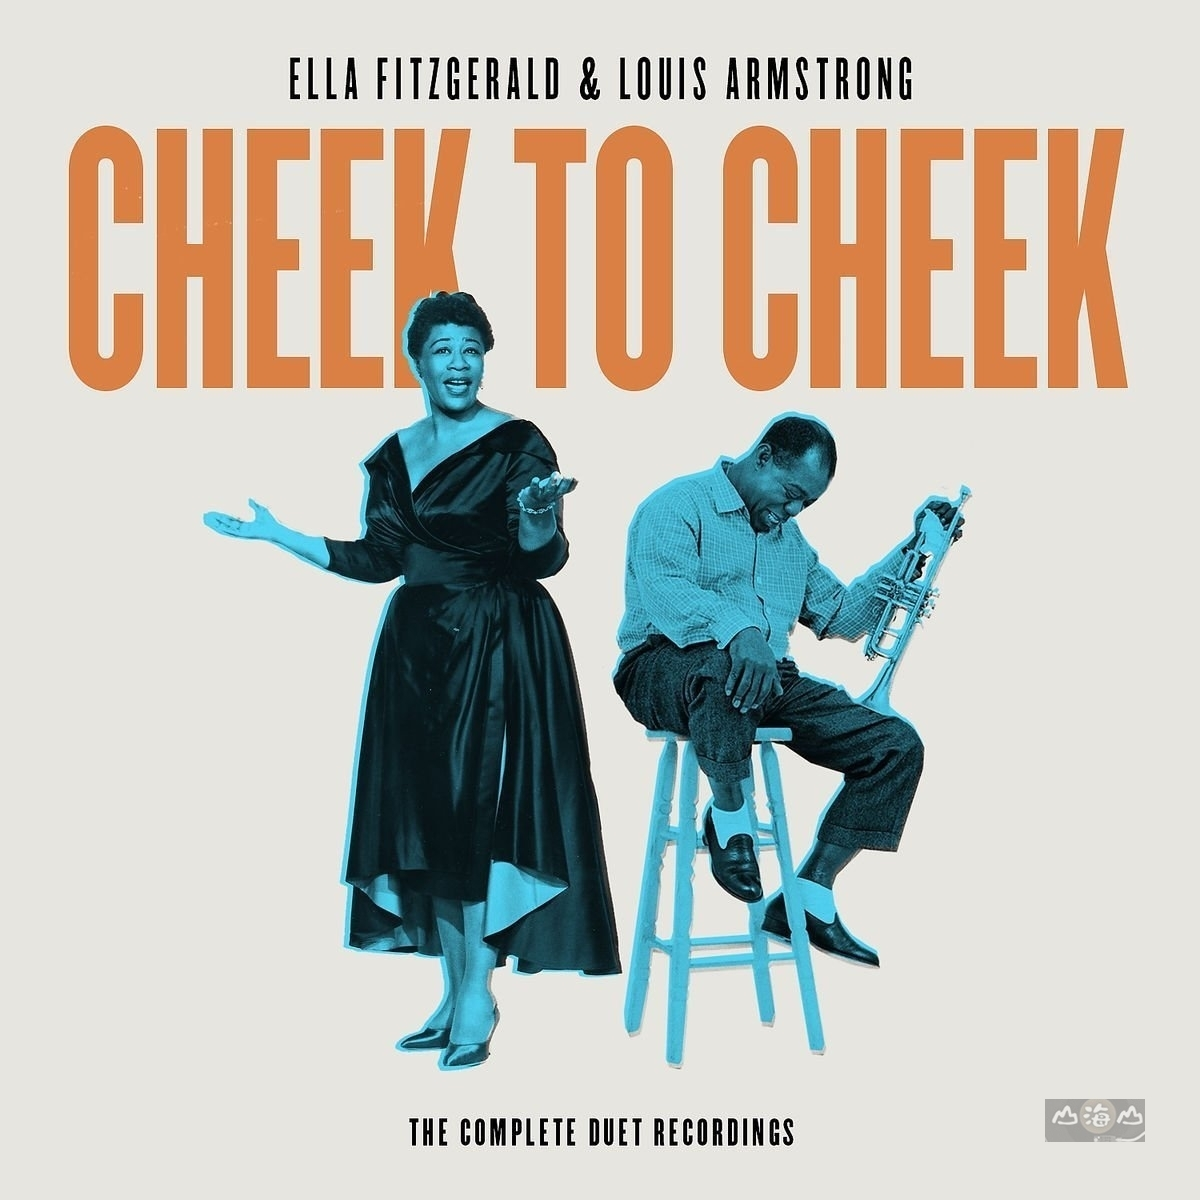 Ella Fitzgerald And Louis Armstrong Go Cheek To Cheek On A New 4 Disc Set Wmra And Wemc